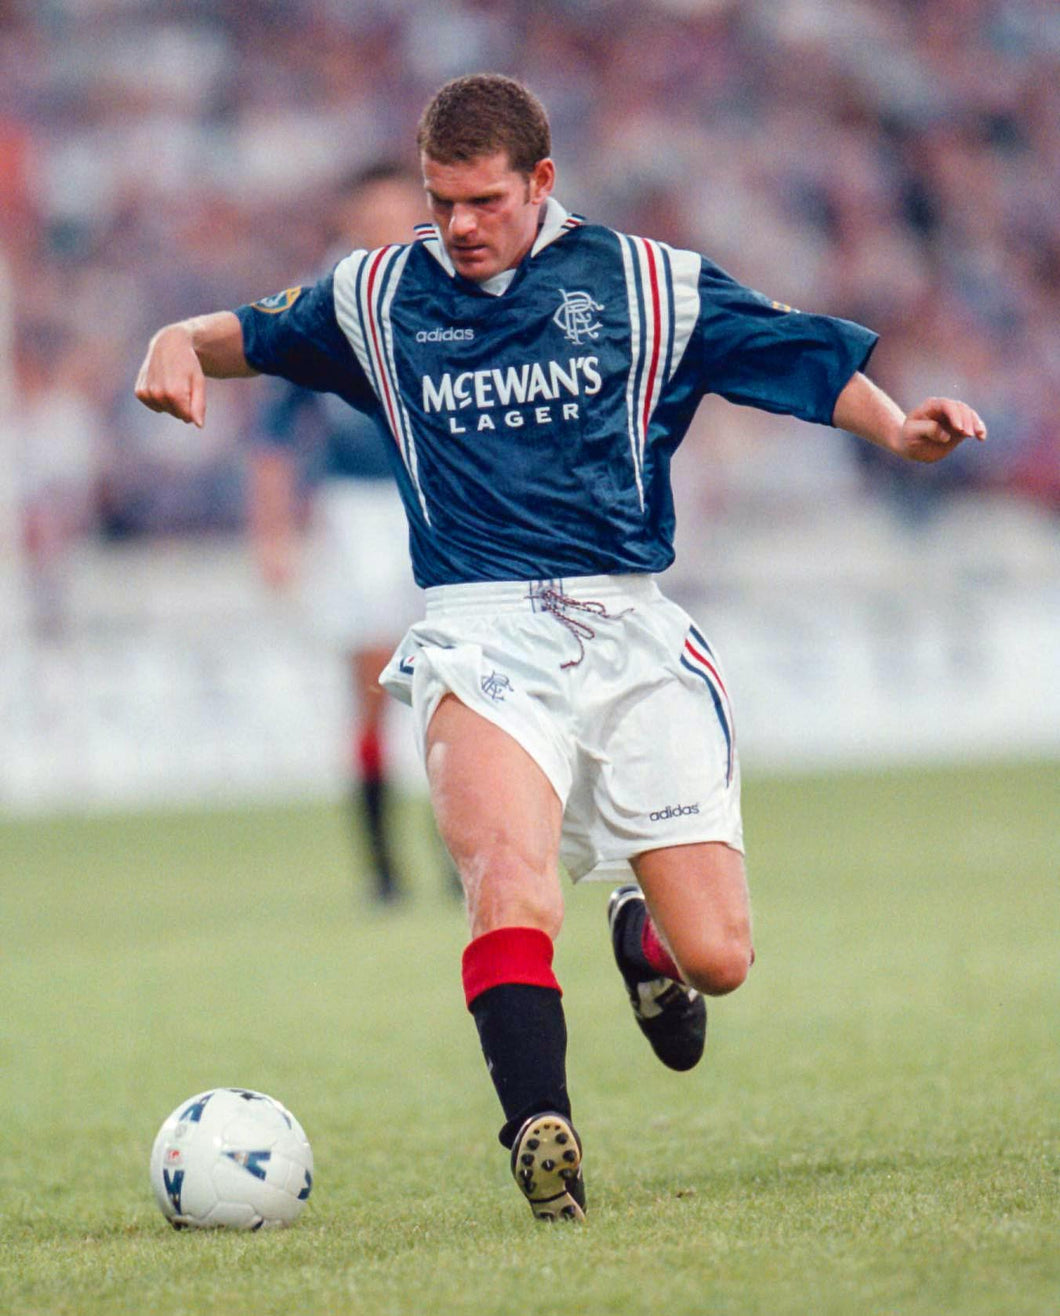 Video Message - Ian Durrant